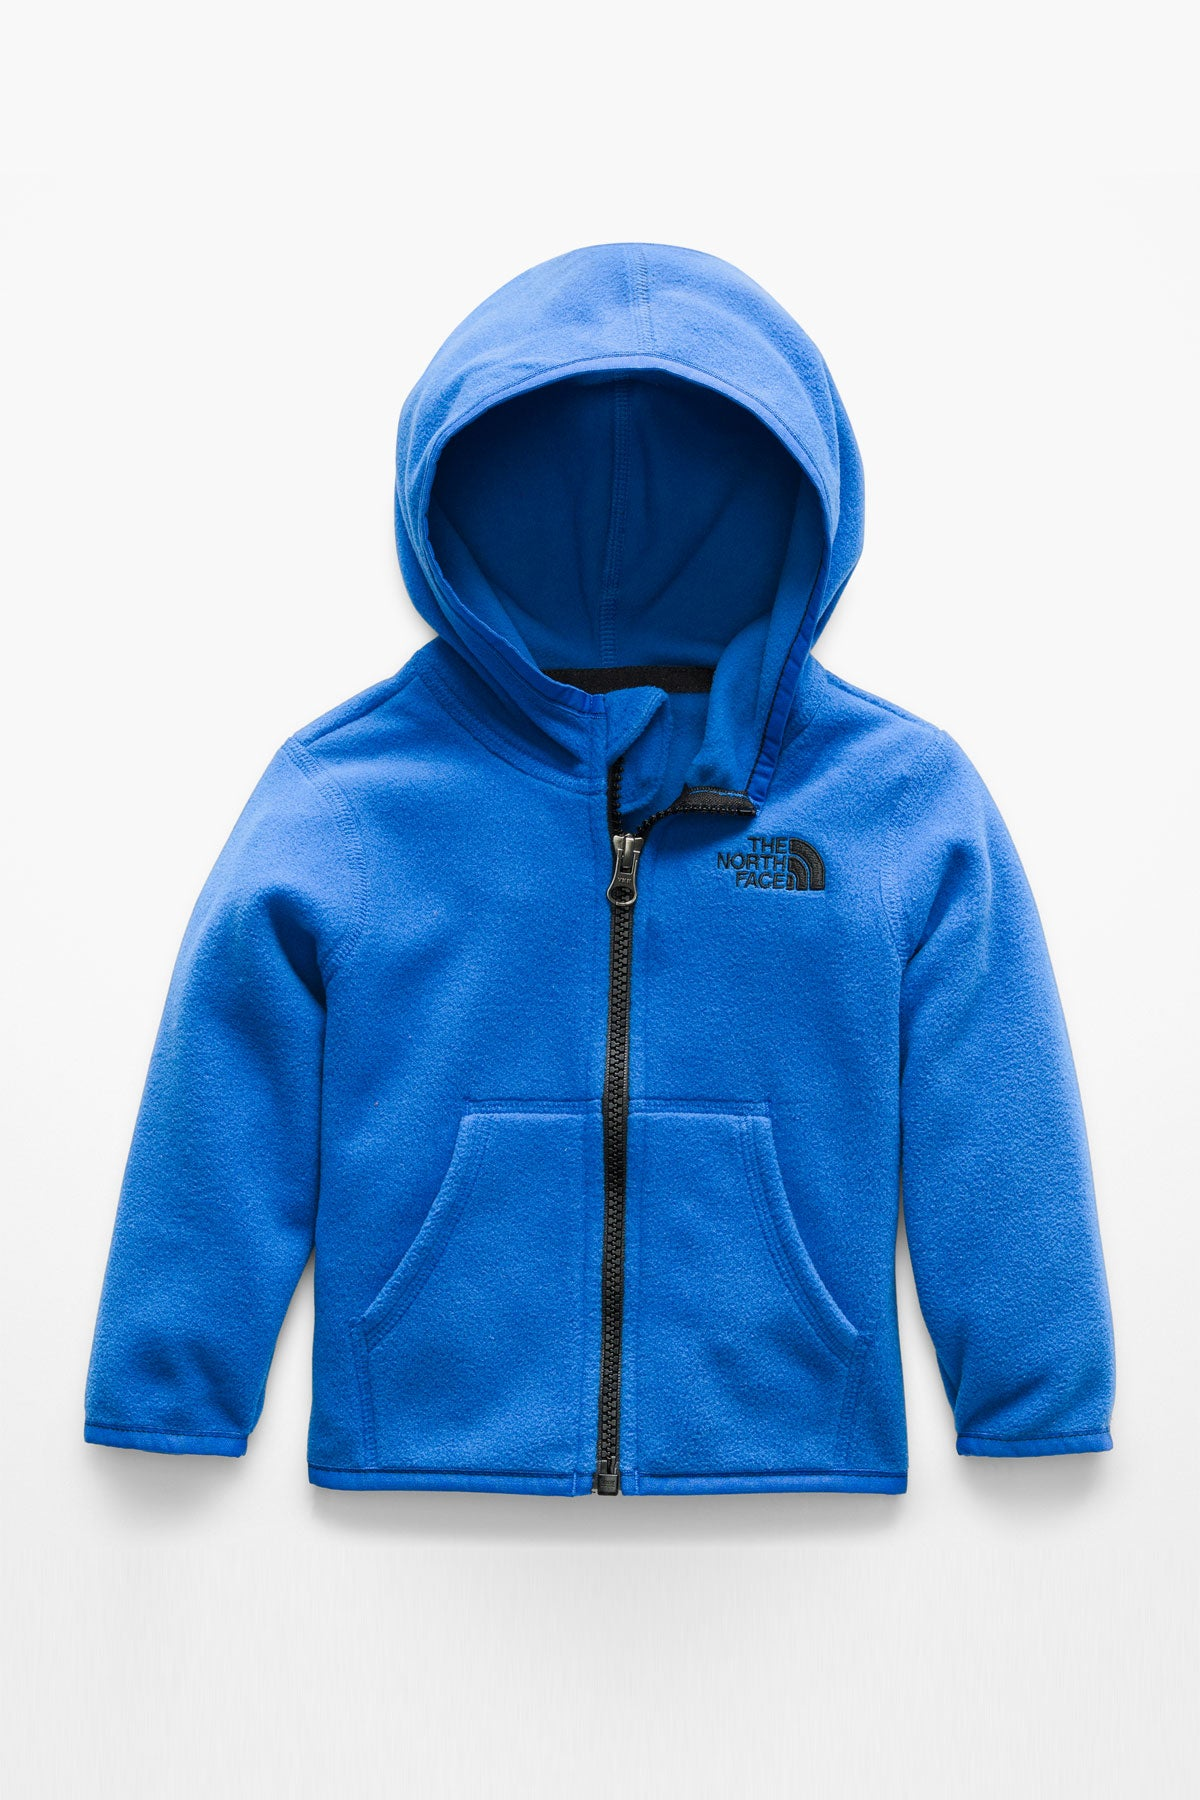 3eb20004e +Menu. Home; Girls · Boys · Baby Girls · Baby Boys · Shoes · The North Face  Infant Glacier Full Zip Hoodie ...